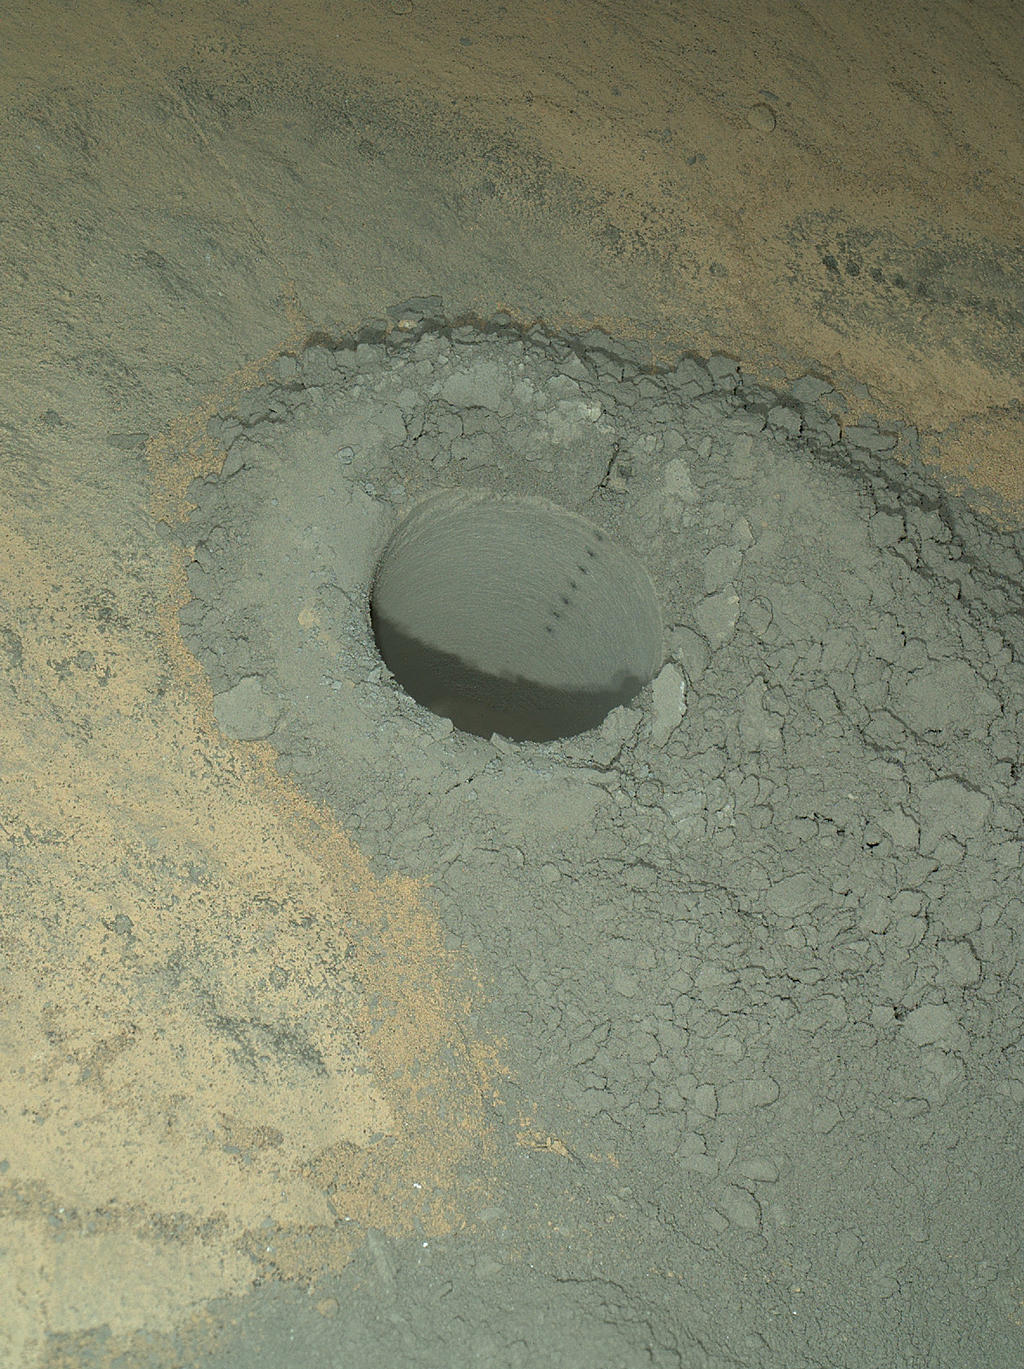 The Mars Hand Lens Imager on NASA's Curiosity Mars rover provided this nighttime view of a hole produced by the rover's drill and, inside the hole, a line of scars produced by the rover's rock-zapping laser. The camera used its own white-light LEDs to illuminate the scene on May 13, 2014.